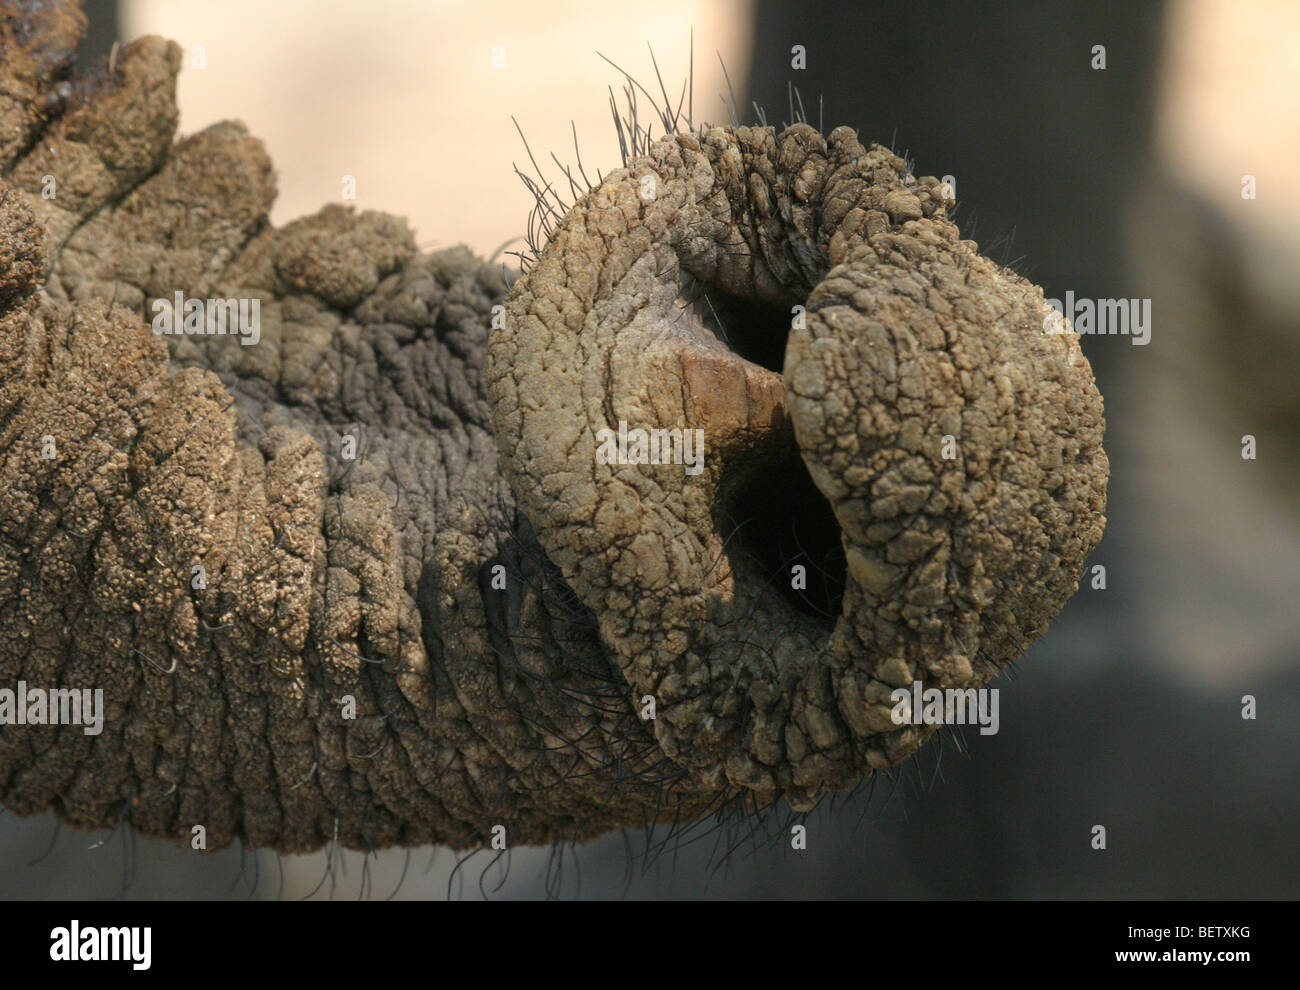 Appendages at the end of an African elephant trunk in Hwange National Park, Zimbabwe - Stock Image